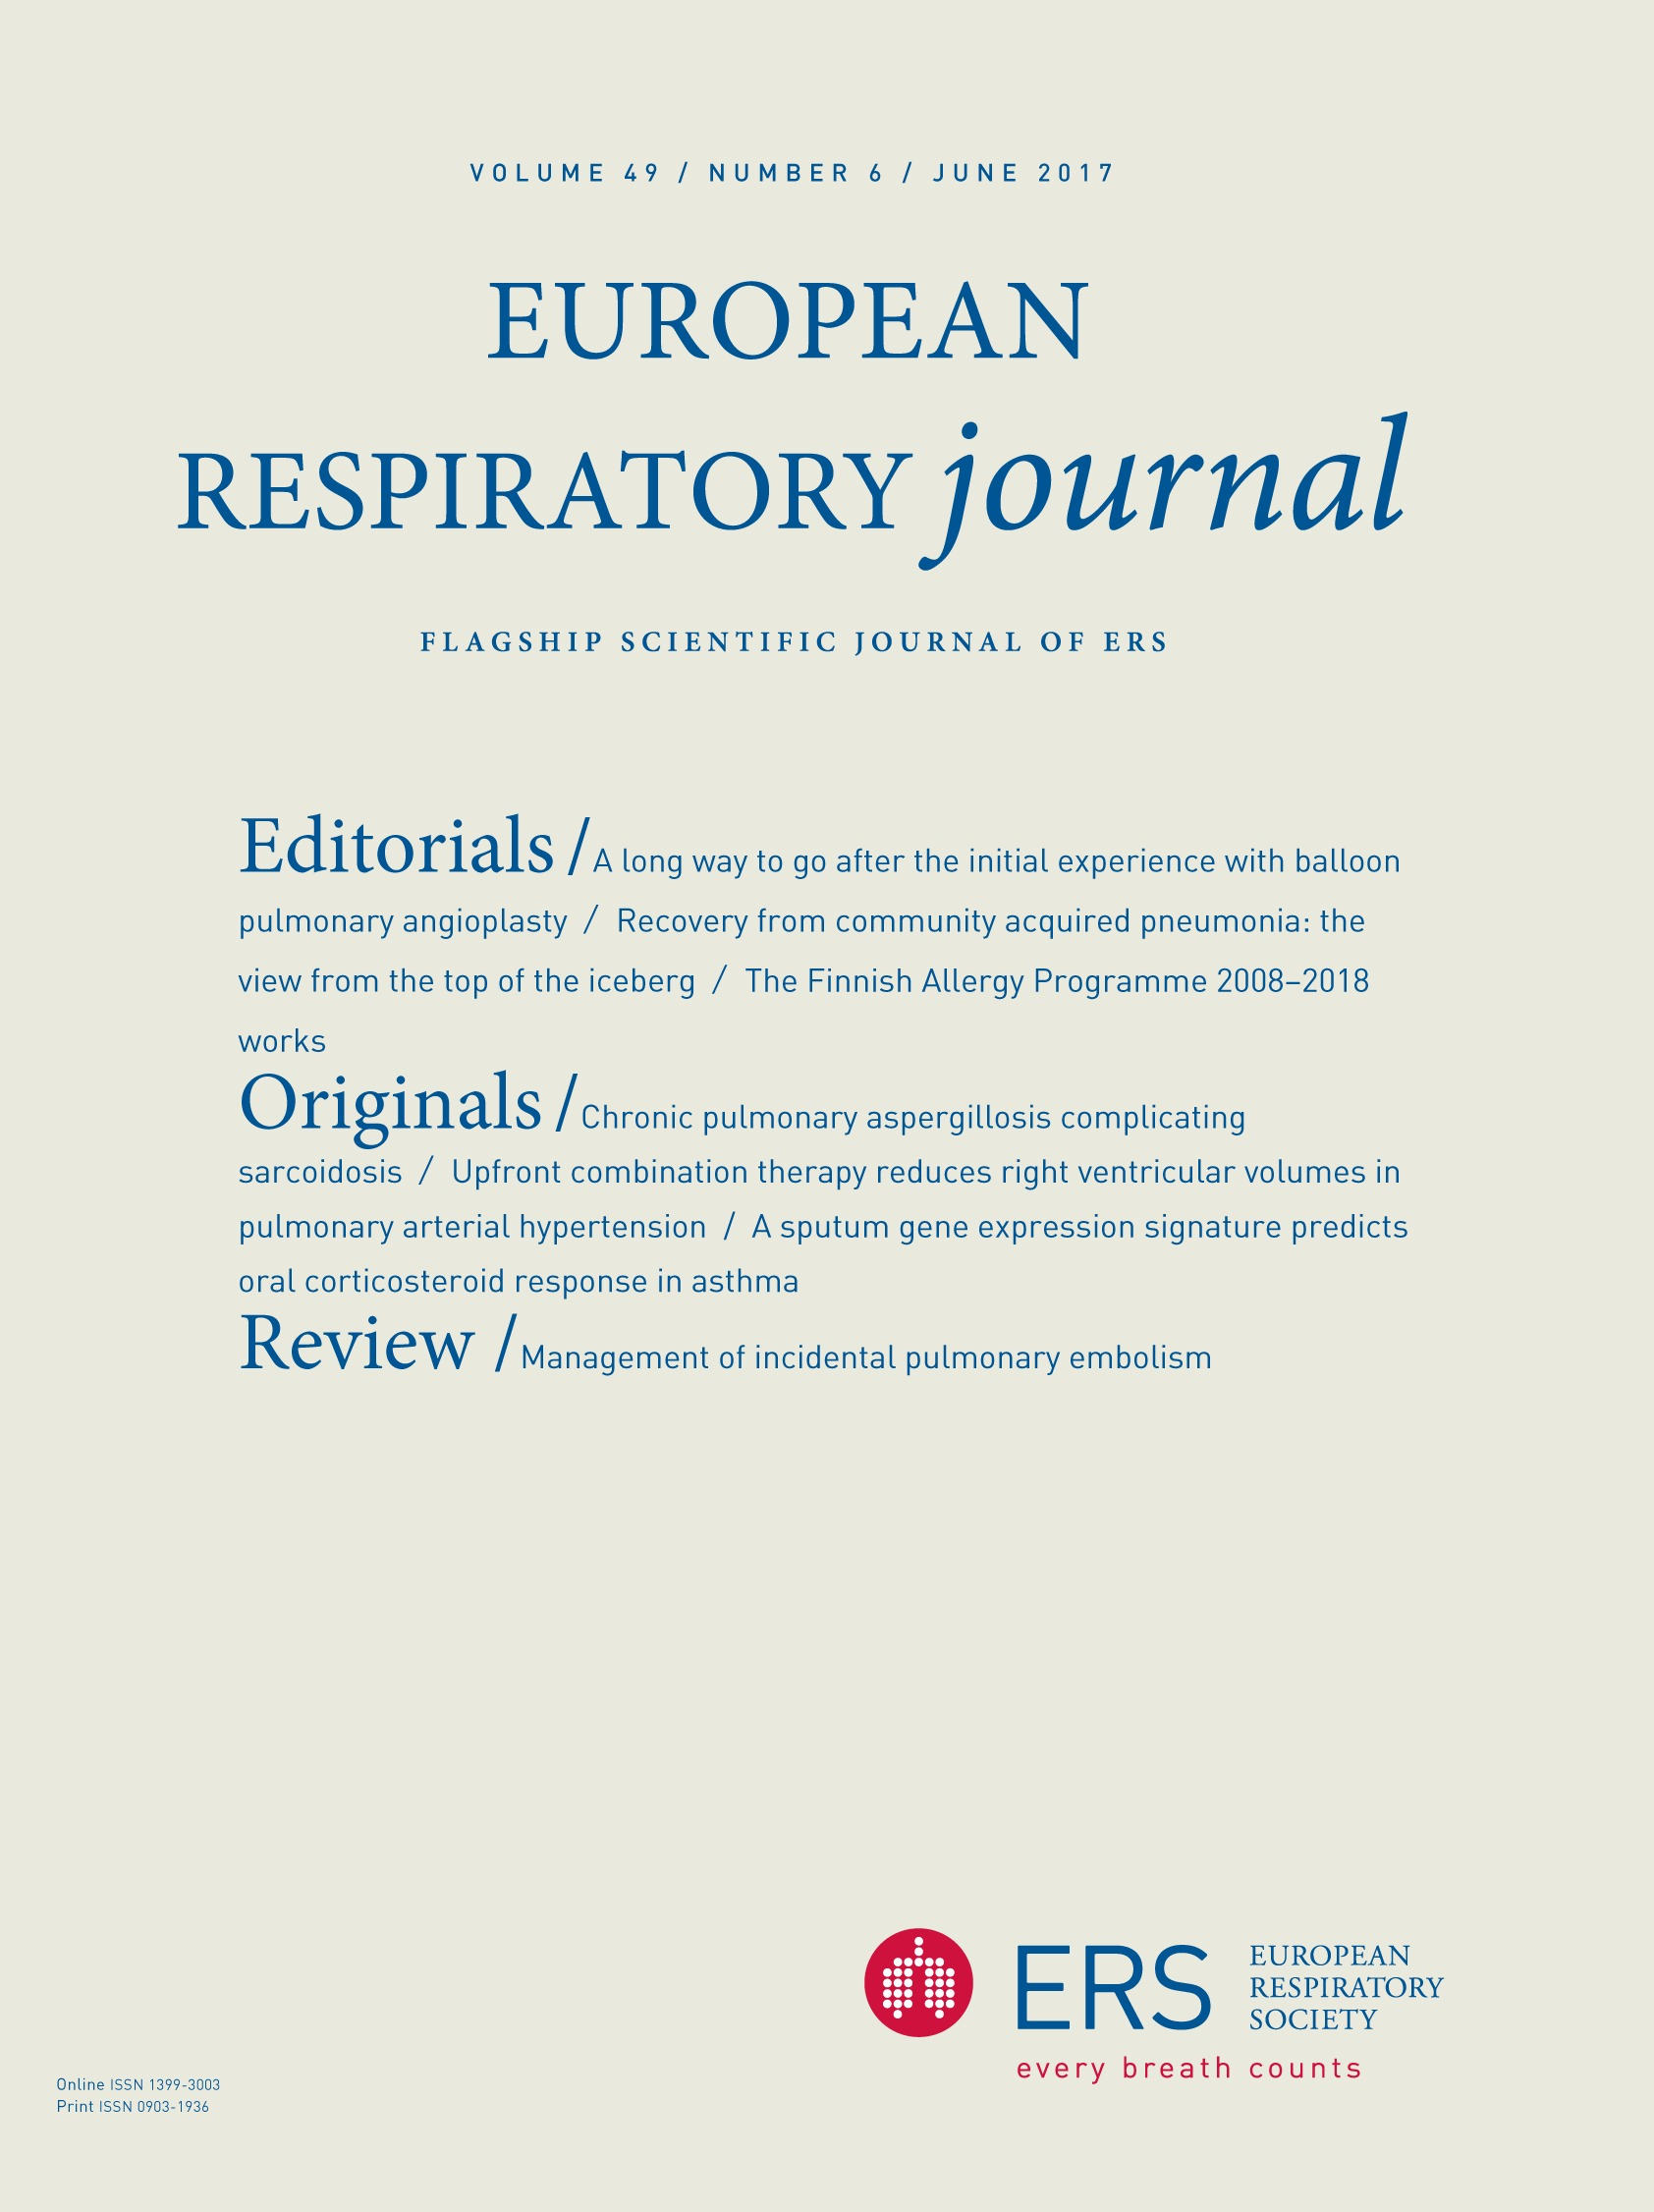 The asbestos fibre burden in human lungs: new insights into the